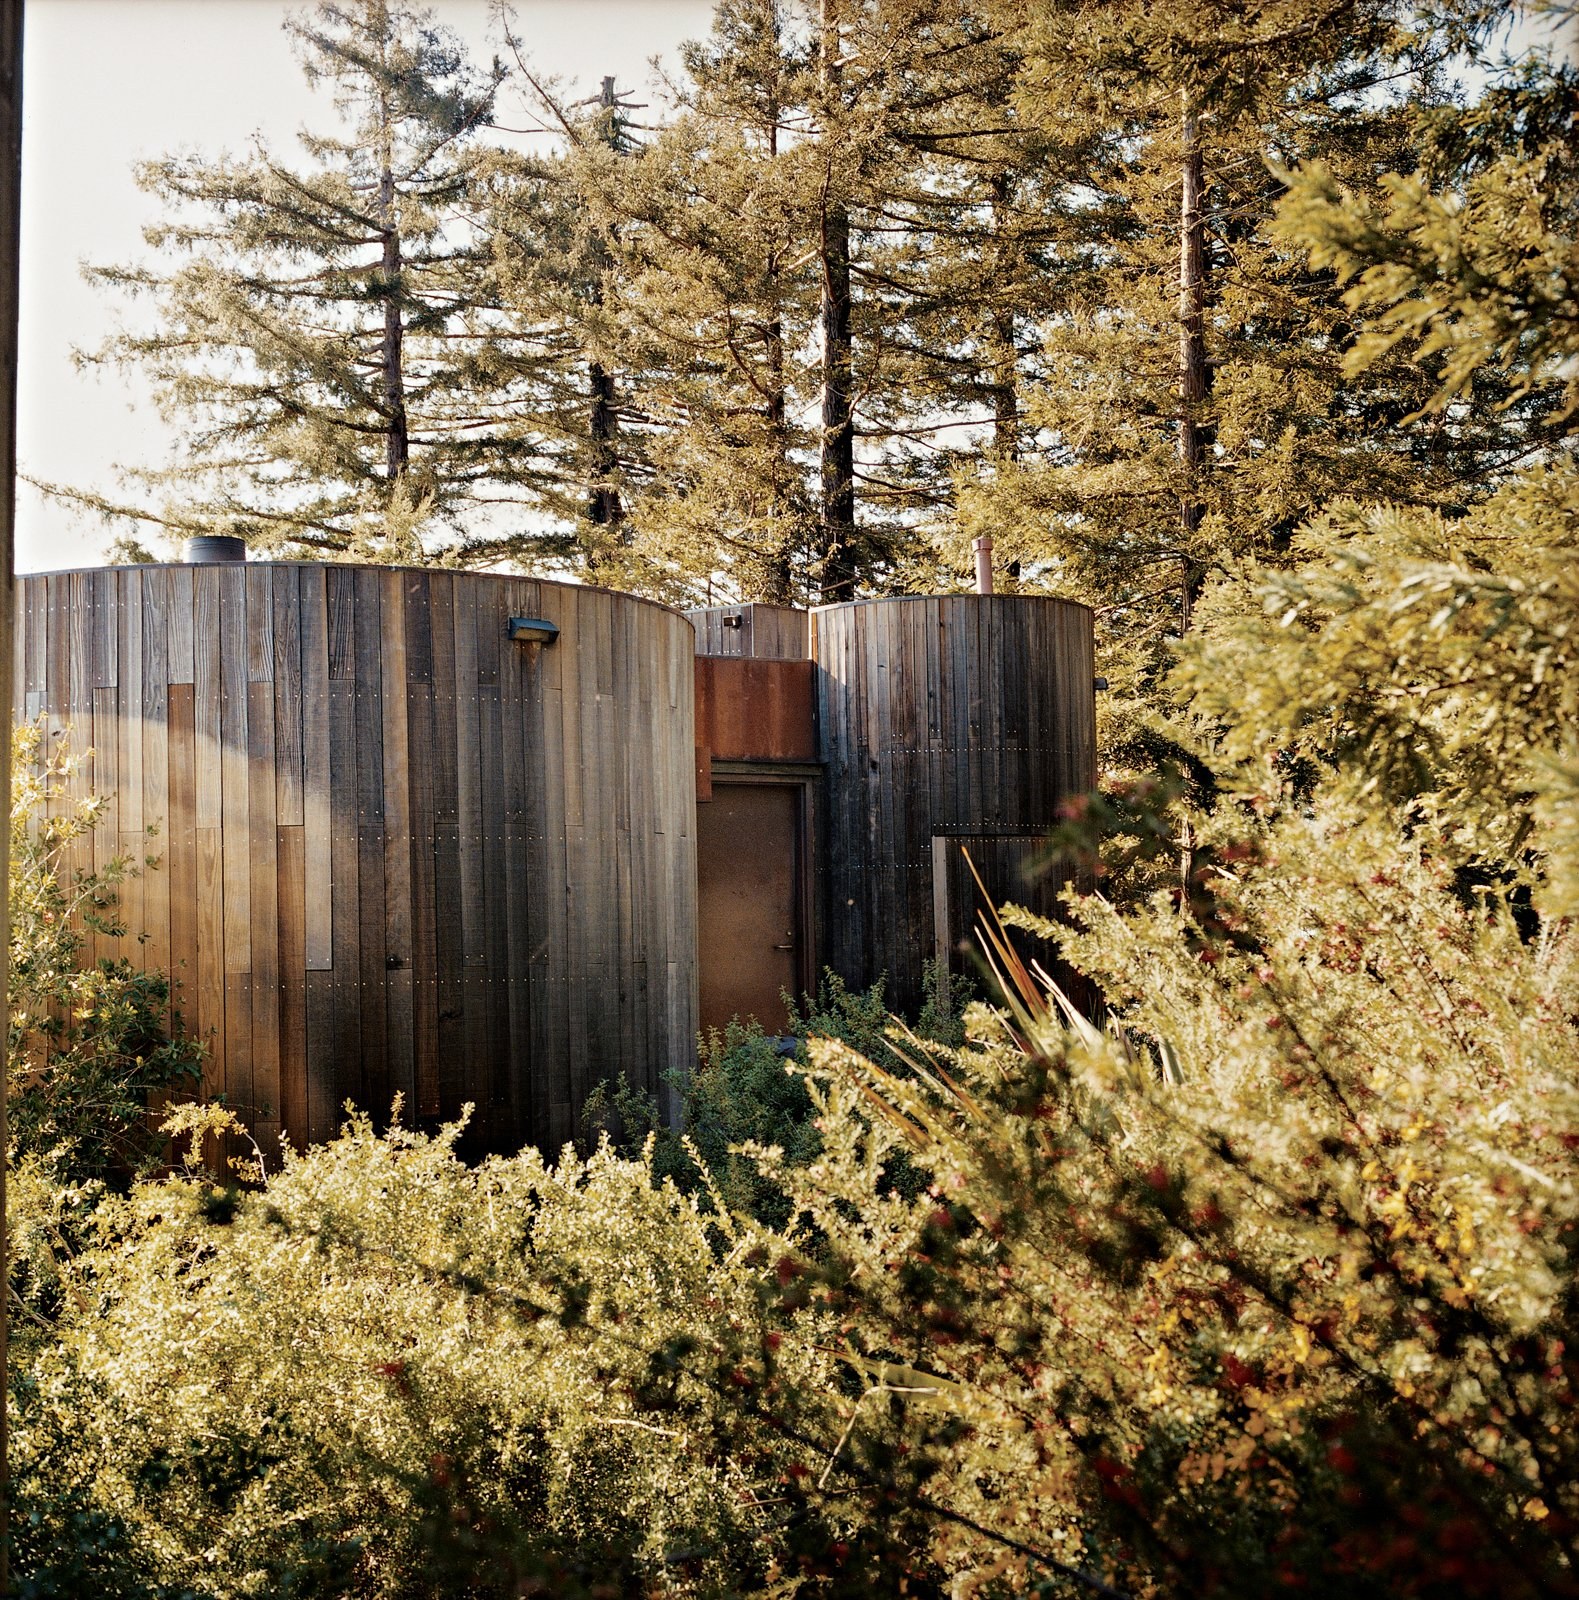 For the Butterfly cabin, which is part of the Post Ranch Inn, Muennig chose materials that age gracefully when exposed to the elements. He regularly uses Cor-Ten steel, a group of steel alloys that form a stable rust-like appearance when battered by wind and rain.